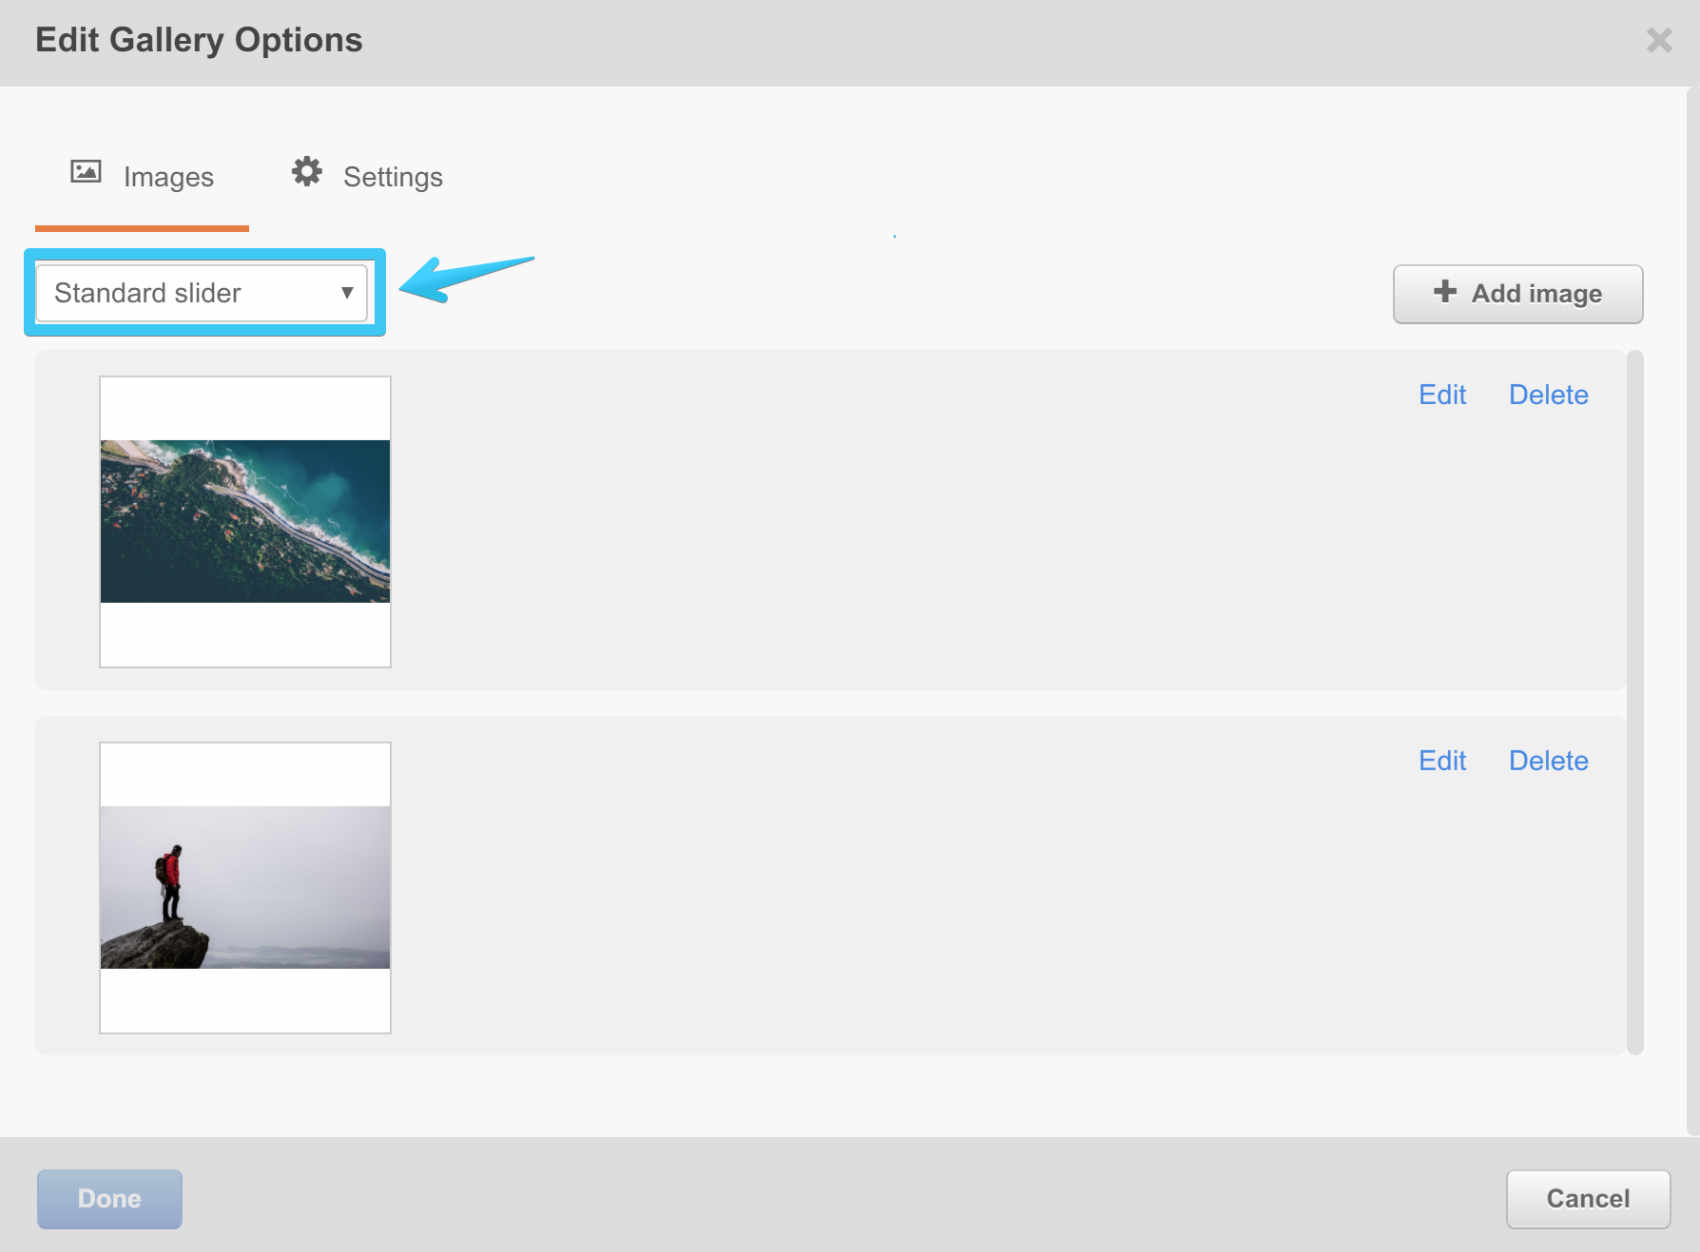 Act2 Template Builder Image Gallery Module Standard Slider setting